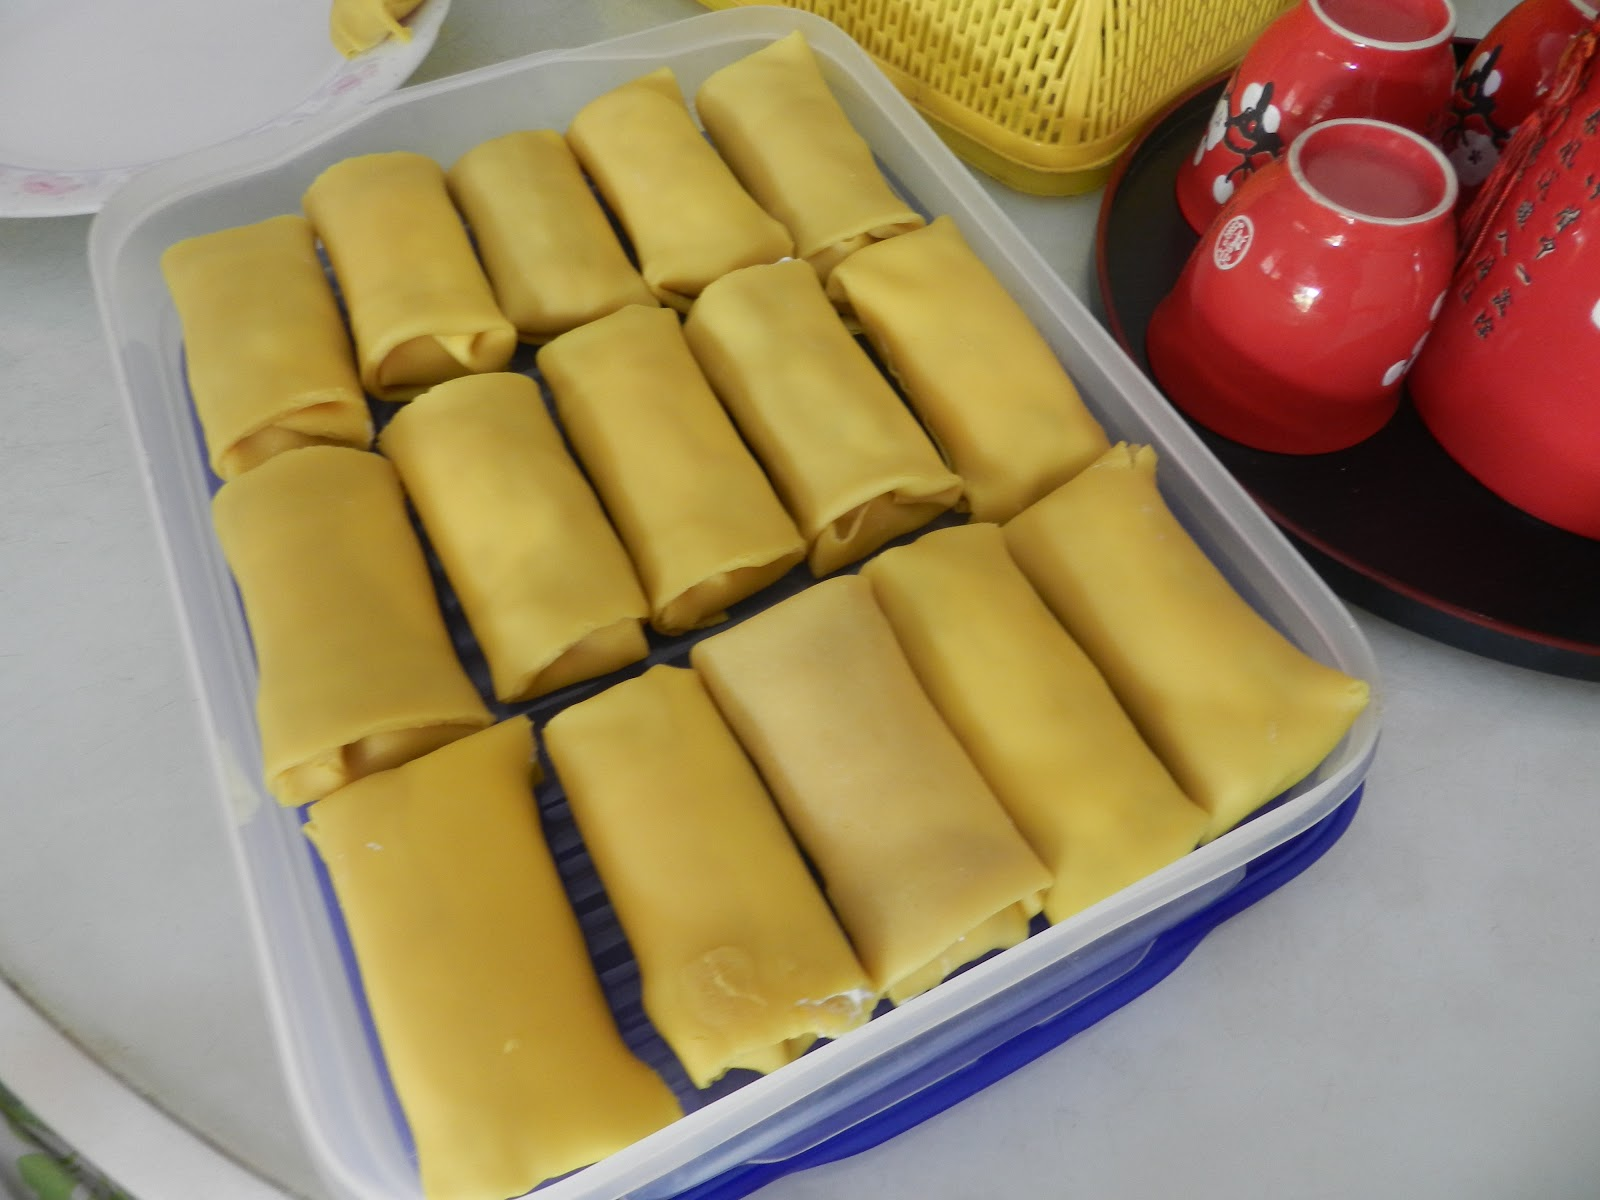 Uncategorized Pancake Pillow a peppers love durian pillow into small puffed rectangular if you have mixed the cream and just plop large tablespoon onto middle of pancake fold